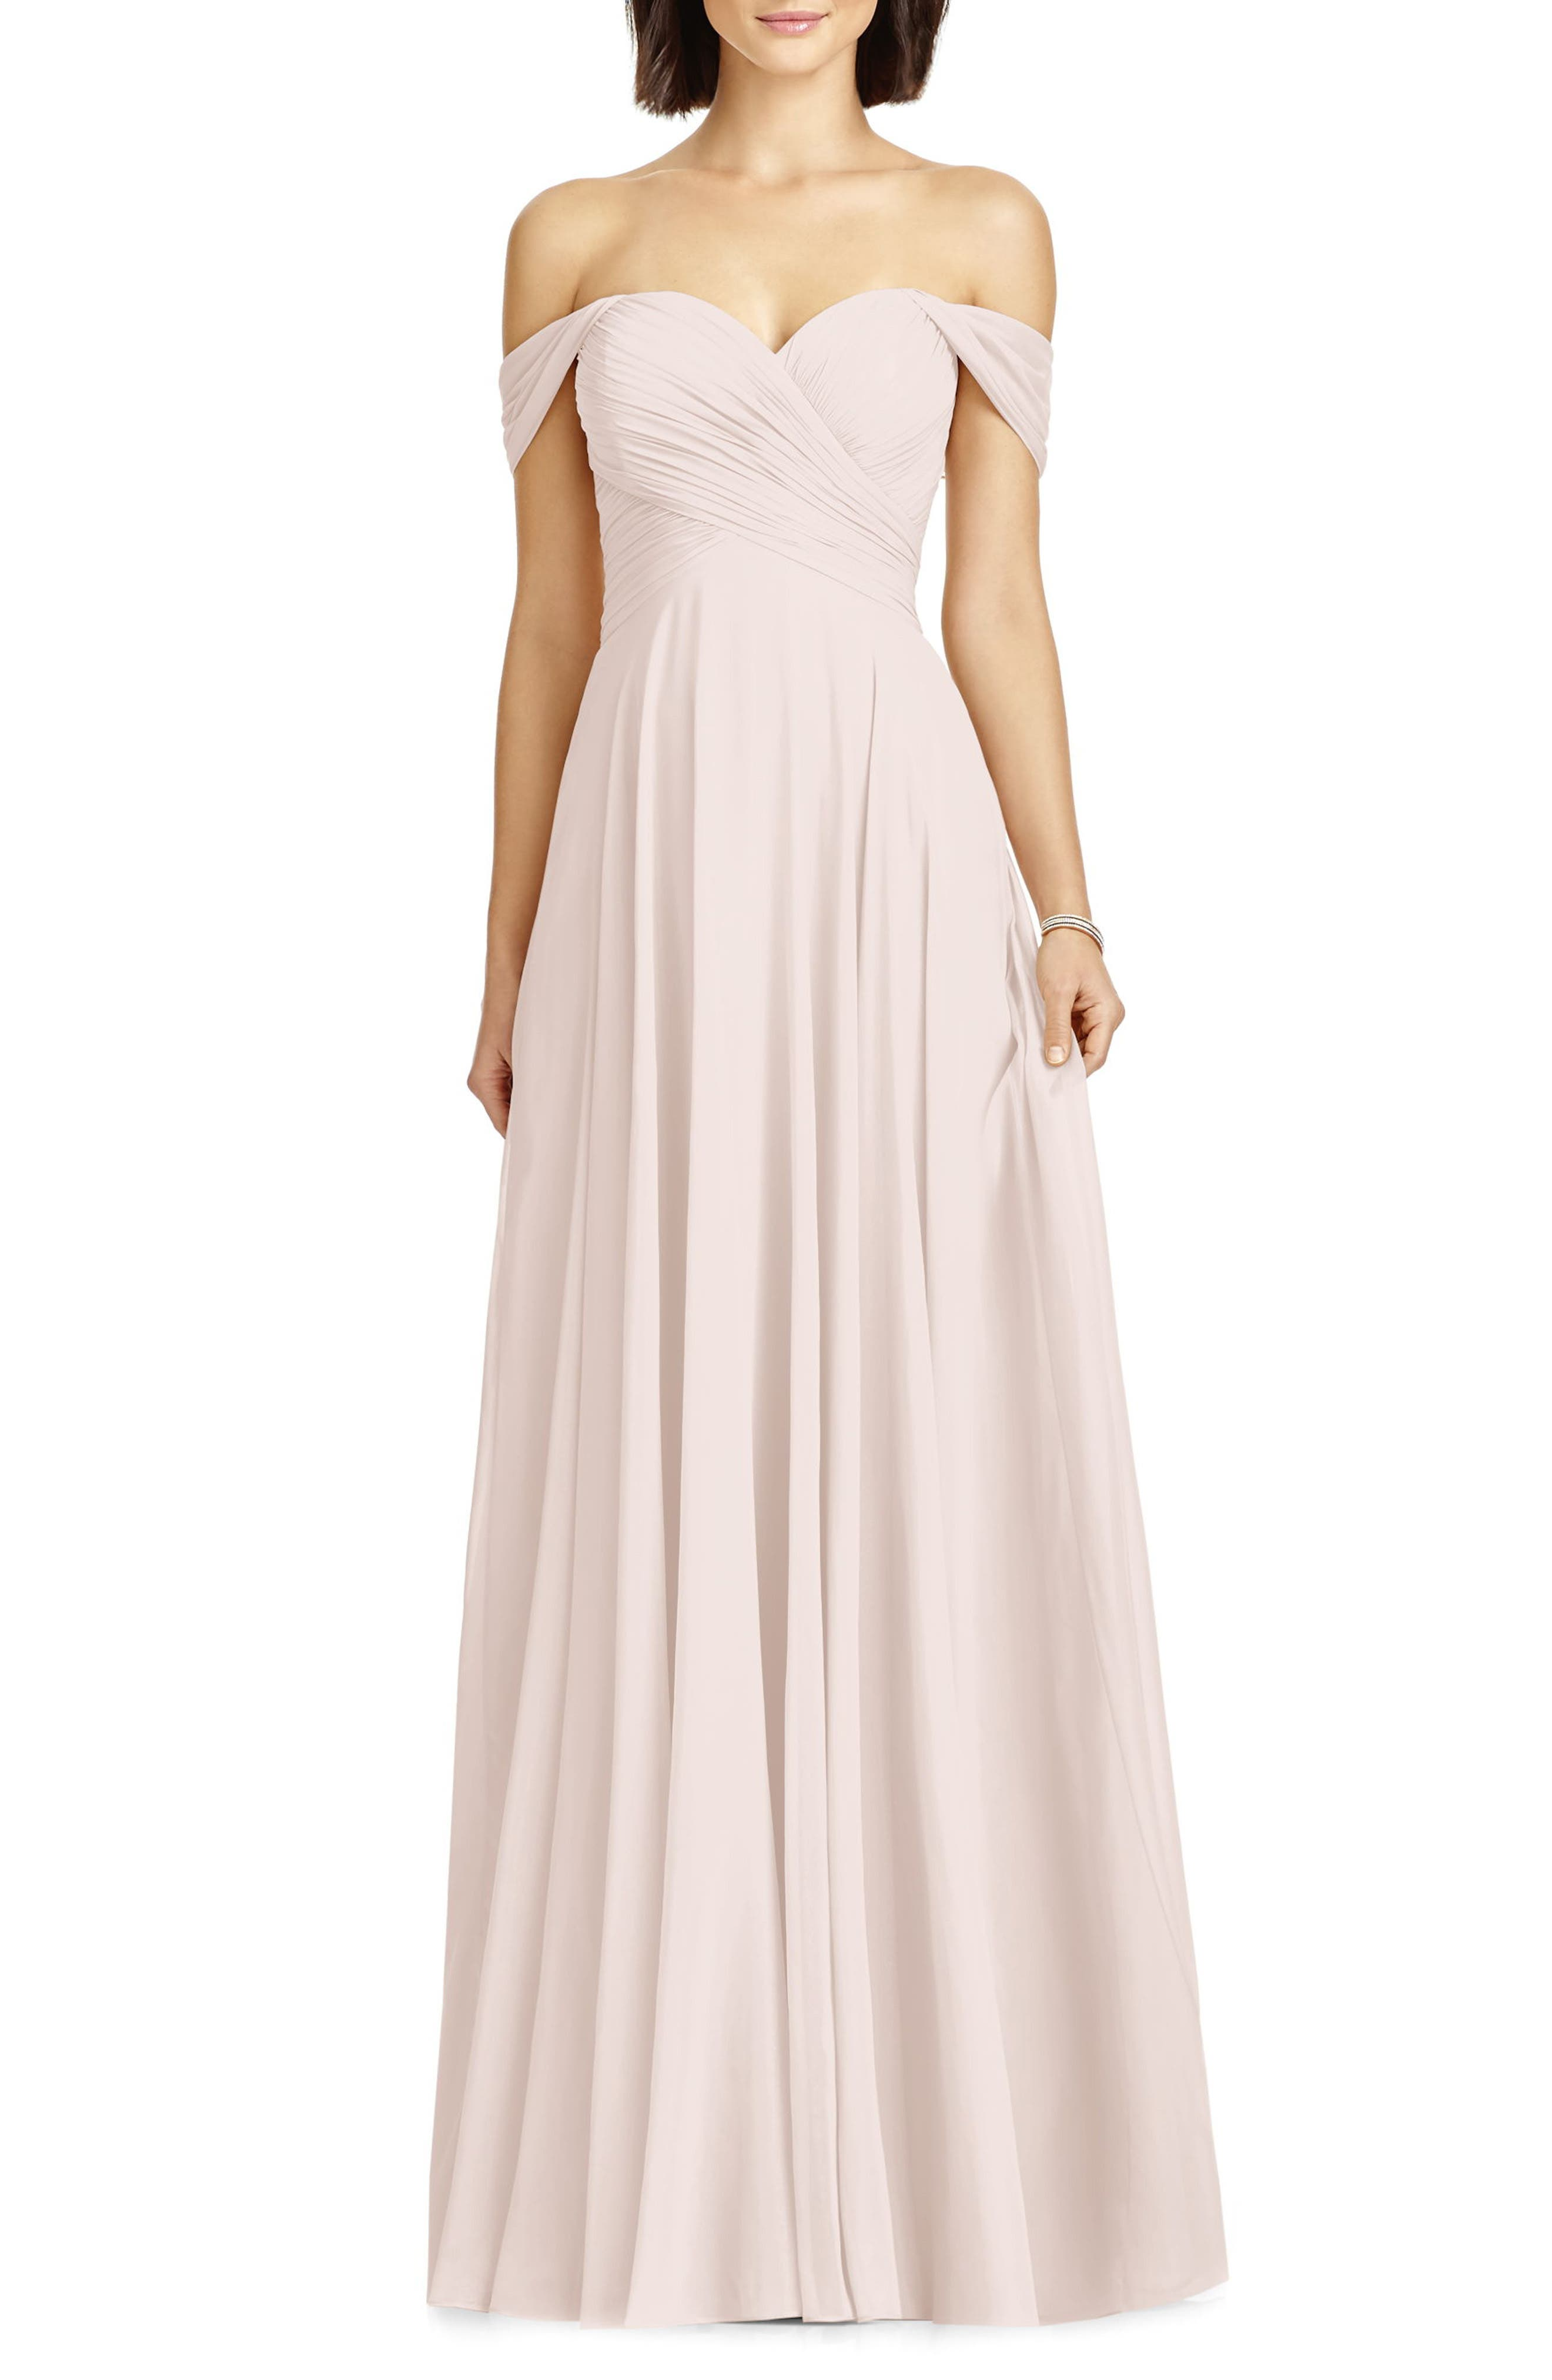 This lovely chiffon gown shaped with densely ruched panels that wrap the bodice is designed to flatter all figures in your wedding party. Softly draped cap sleeves frame the sweetheart neckline, while the gently pleated skirt falls to a sweeping floor length. Style Name: Dessy Collection Lux Ruched Off The Shoulder Chiffon Gown (Regular & Plus Size). Style Number: 5370916. Available in stores.